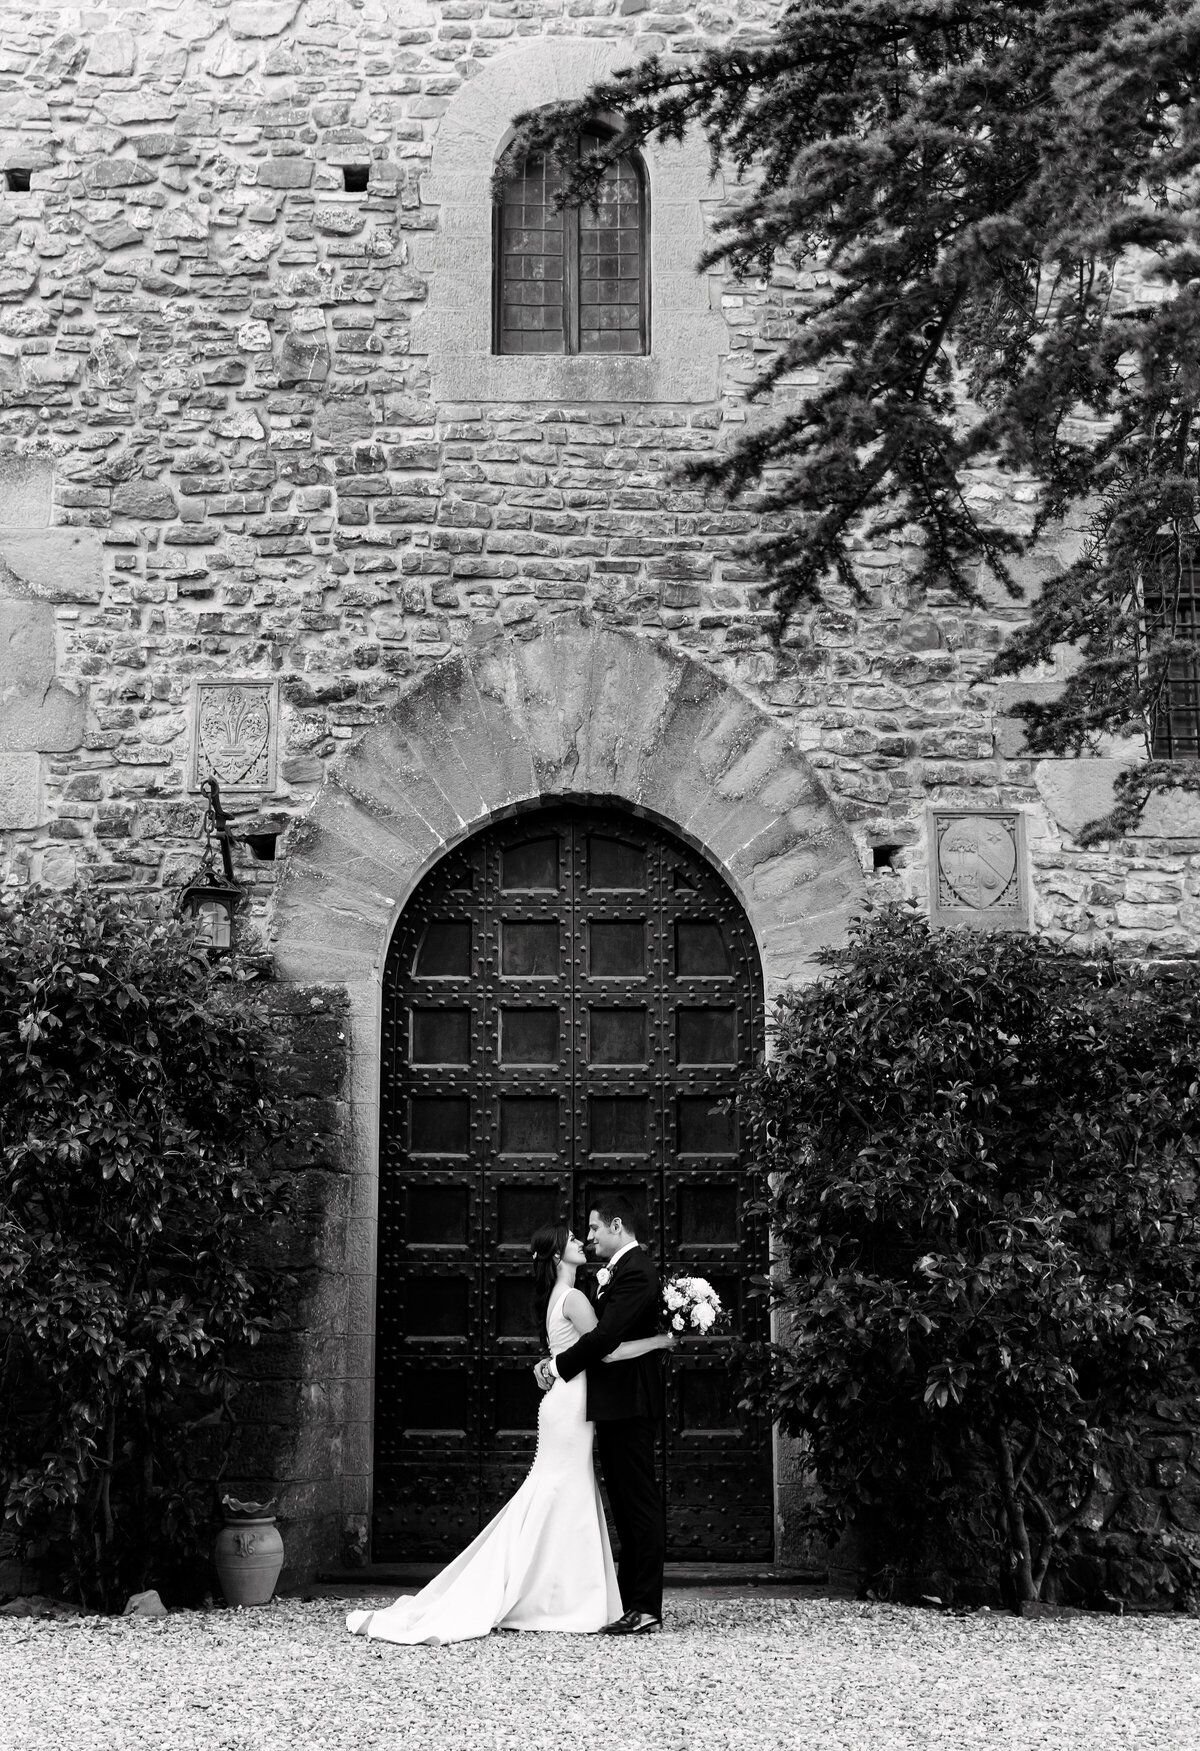 Tuscany_Italy_0187_Helga_Marc_Wedding_2255